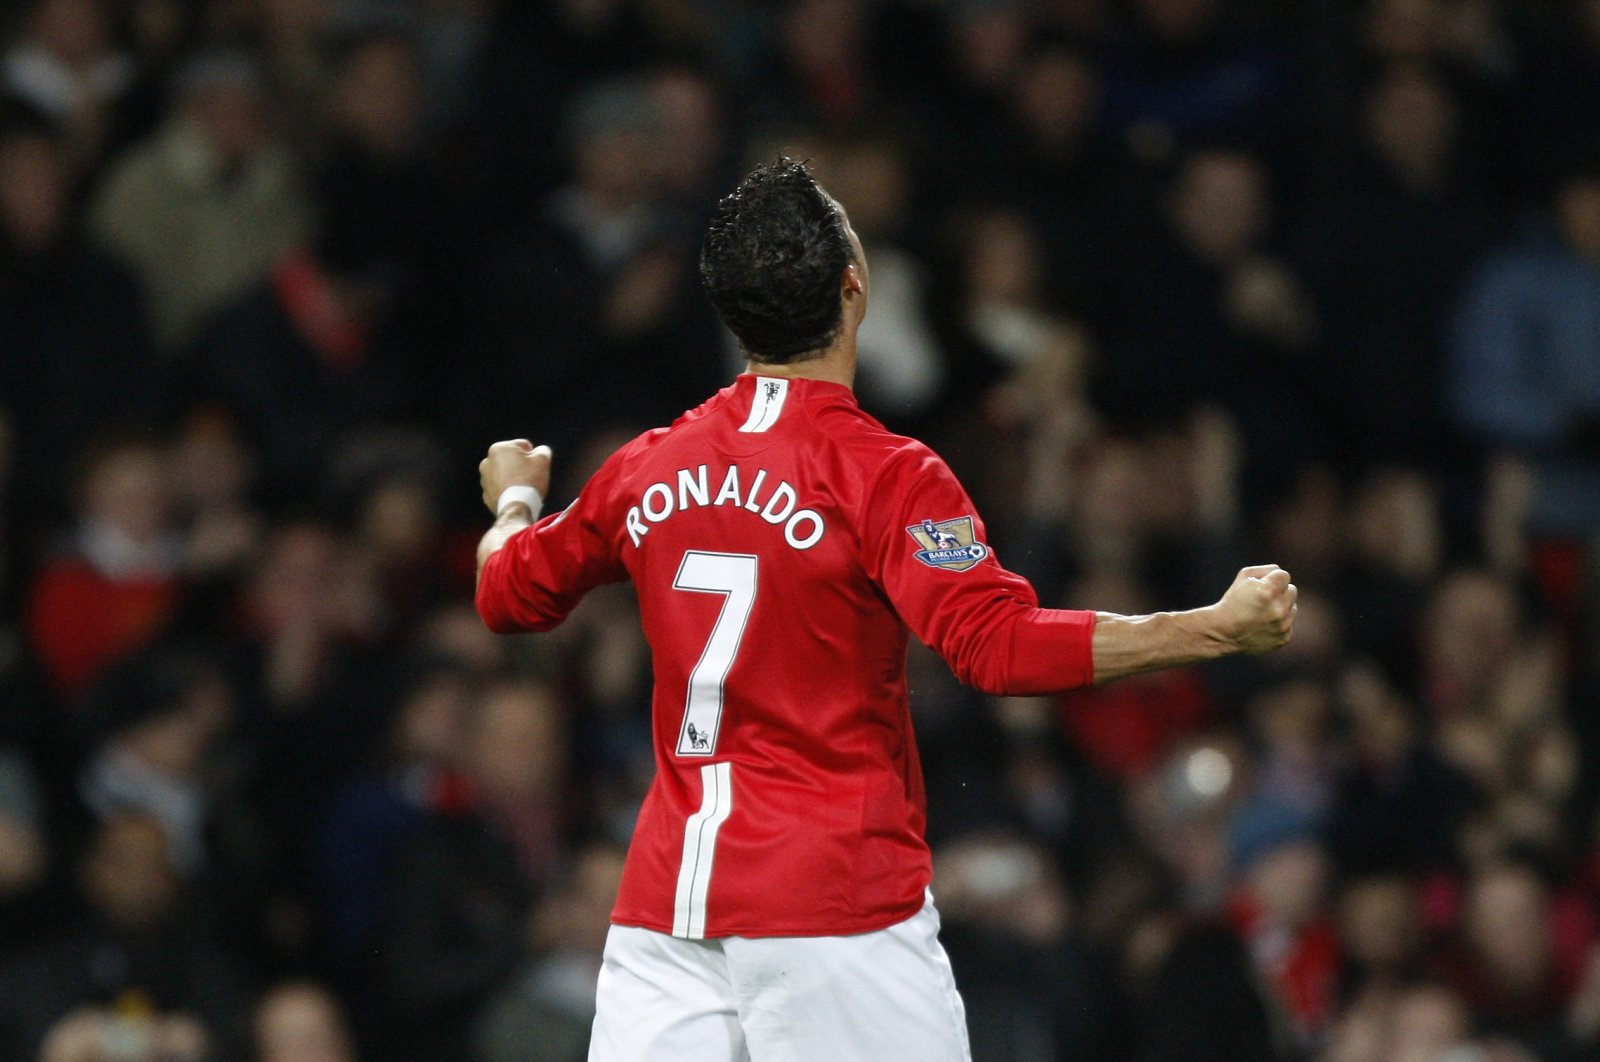 Manchester United's Cristiano Ronaldo celebrates after scoring against West Ham in a Premier League match at Old Trafford Stadium, Manchester, England, Oct. 29, 2008. (AP Photo)